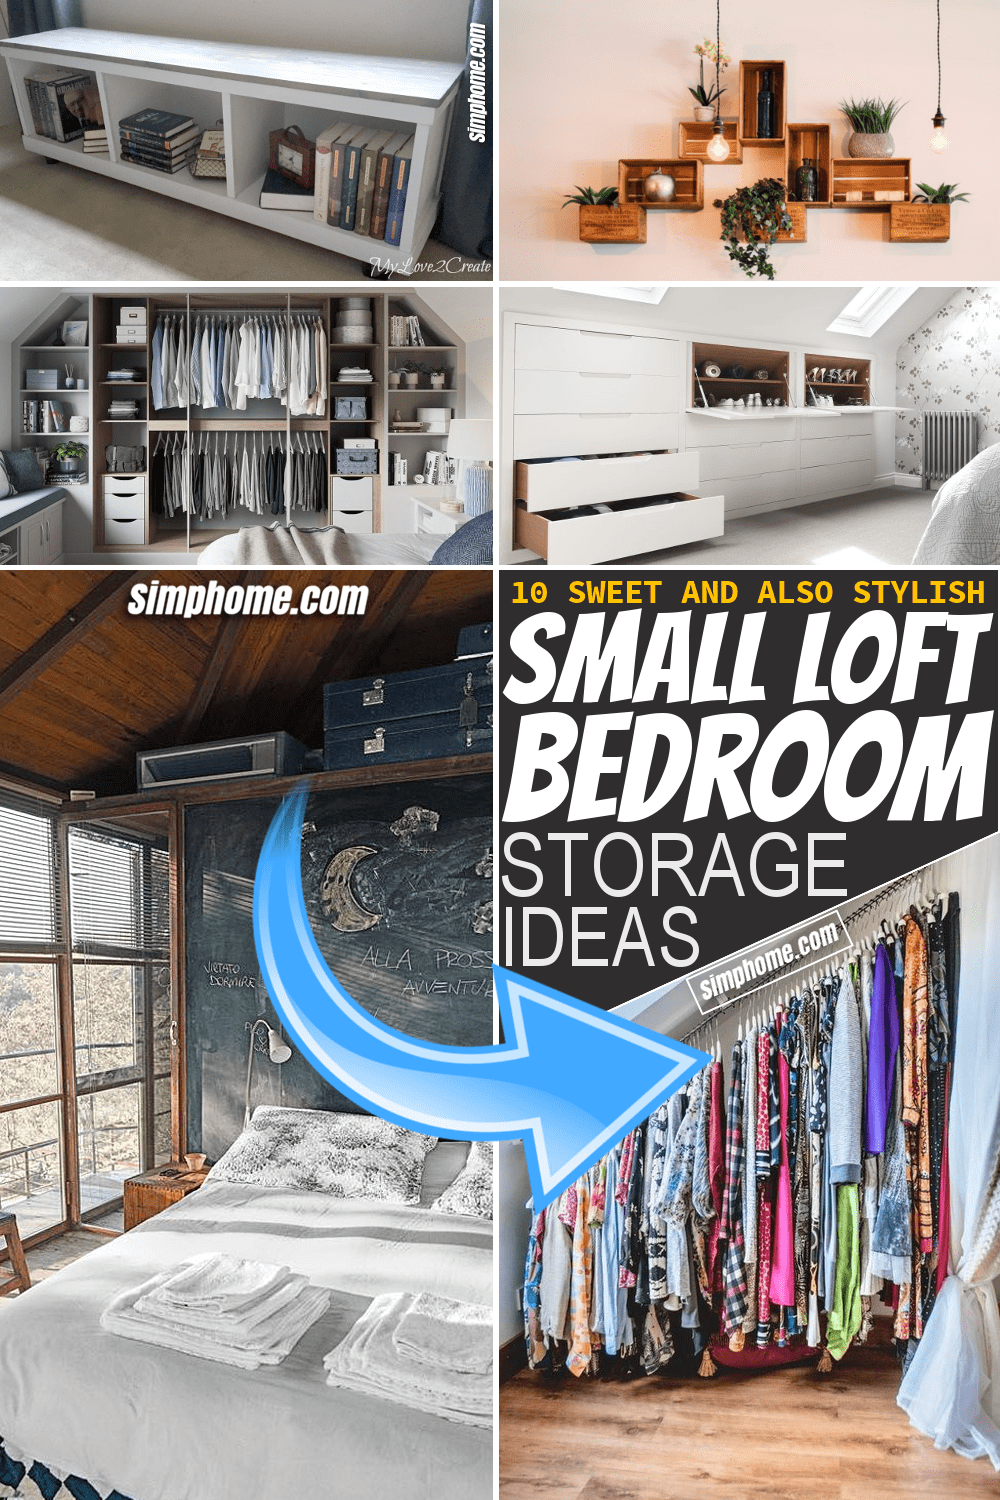 Simphome.com 10 Small Loft Bedroom Storage ideas Featured Image Pinterest